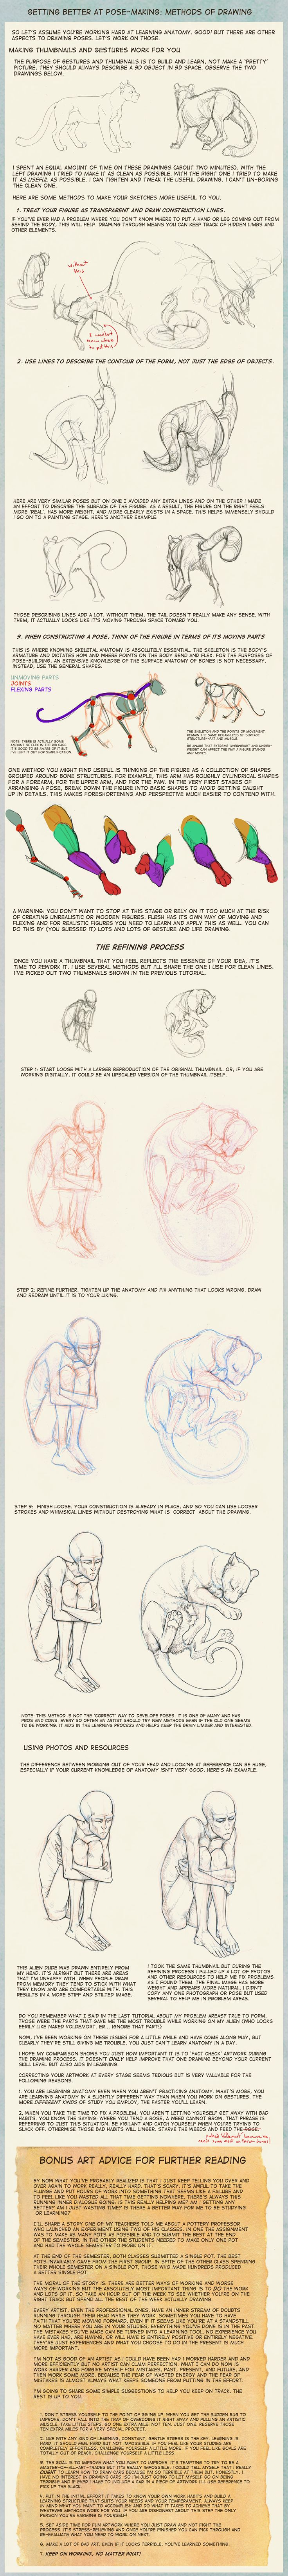 Poses: methods of drawing by hibbary.deviantart.com on @deviantART ✤ || CHARACTER DESIGN REFERENCES | 解剖 • علم التشريح • анатомия • 解剖学 • anatómia • एनाटॉमी • ανατομία • 해부 • Find more at https://www.facebook.com/CharacterDesignReferences & http://www.pinterest.com/characterdesigh if you're looking for: #anatomy #anatomie #anatomia #anatomía #anatomya #anatomija #anatoomia #anatomi #anatomija #animal #creature || ✤